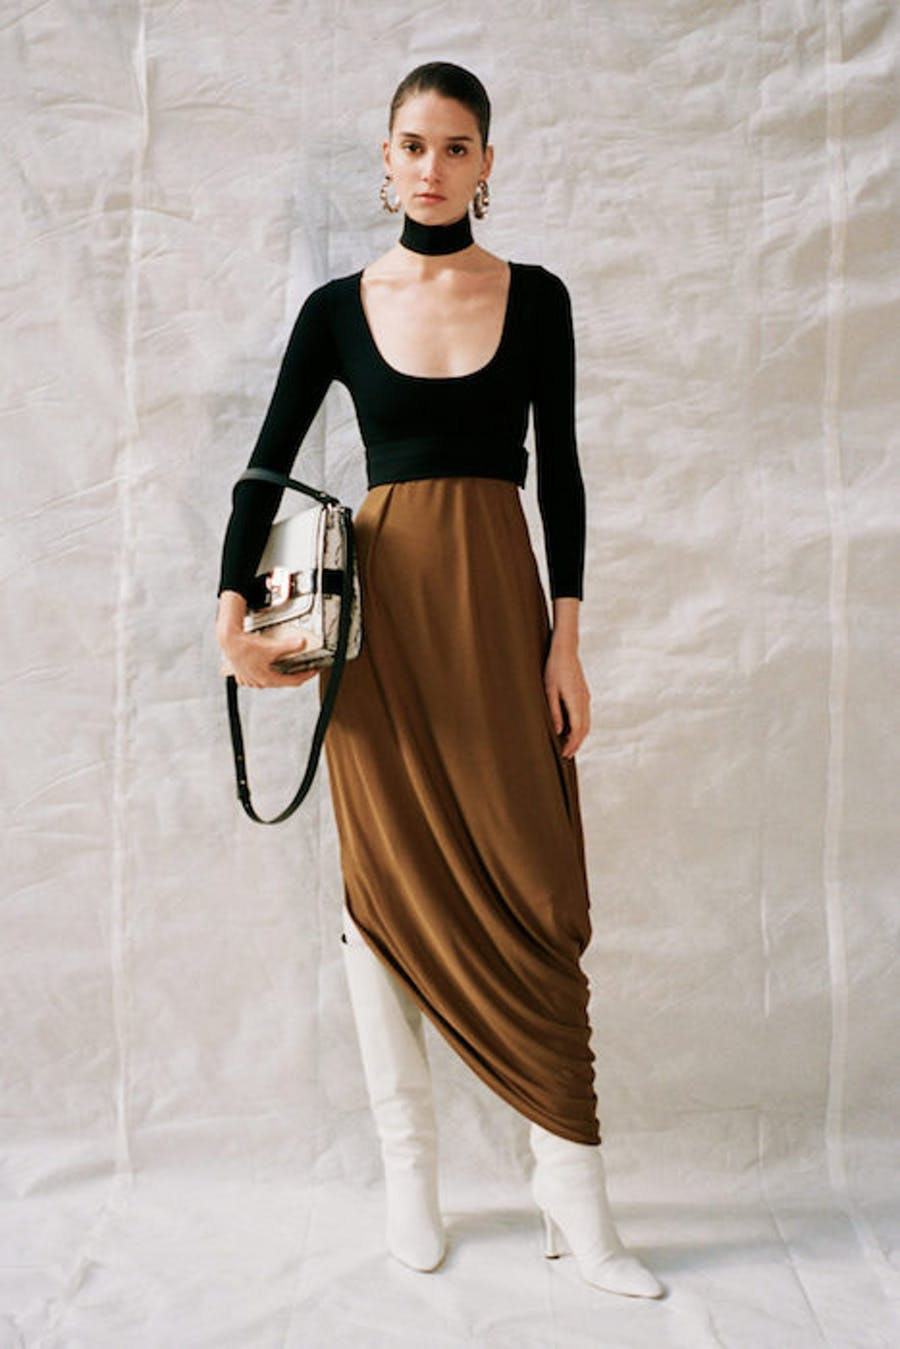 Proenza Schouler Scoop Neck Long Sleeve Top in Black Draped Long Ruched Skirt in Brown Pre Fall 20